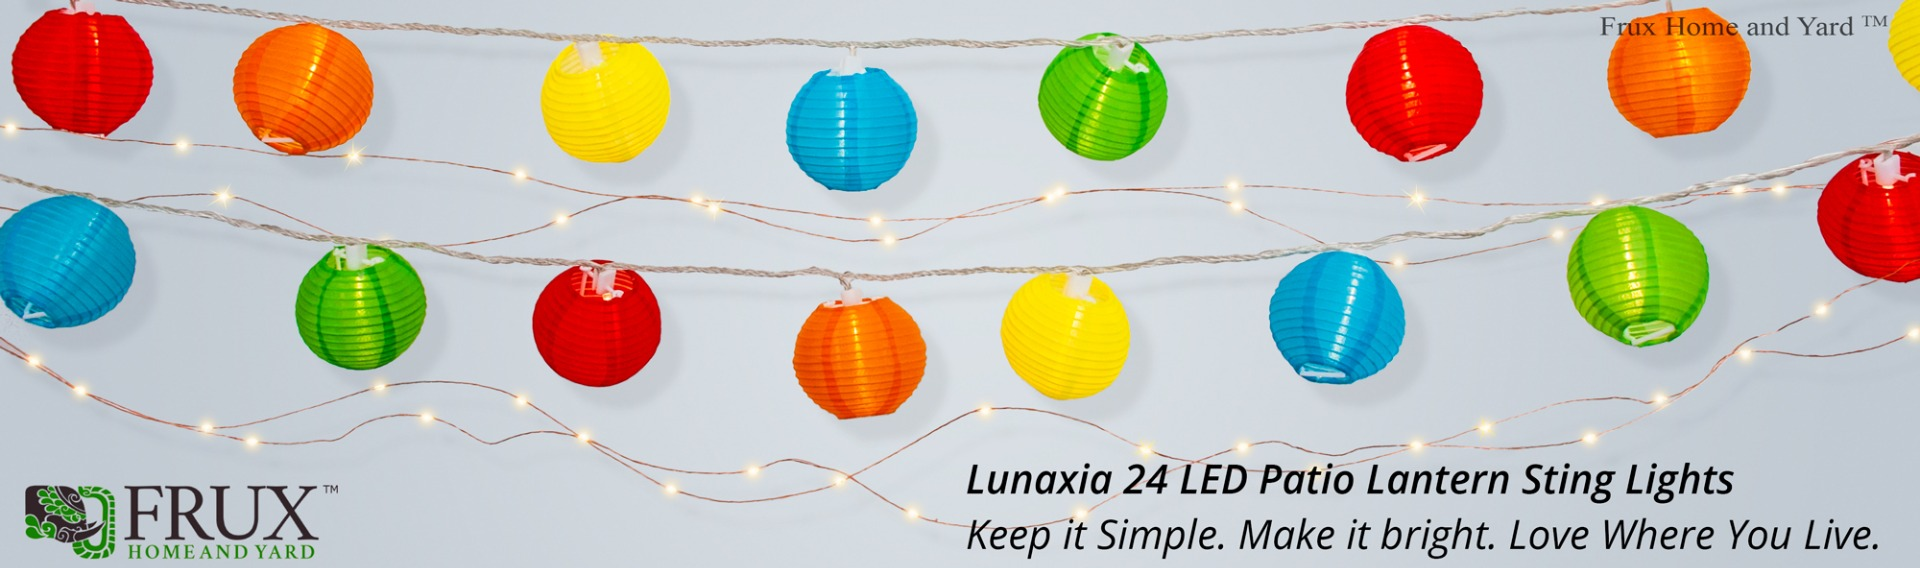 lunaxia string lights